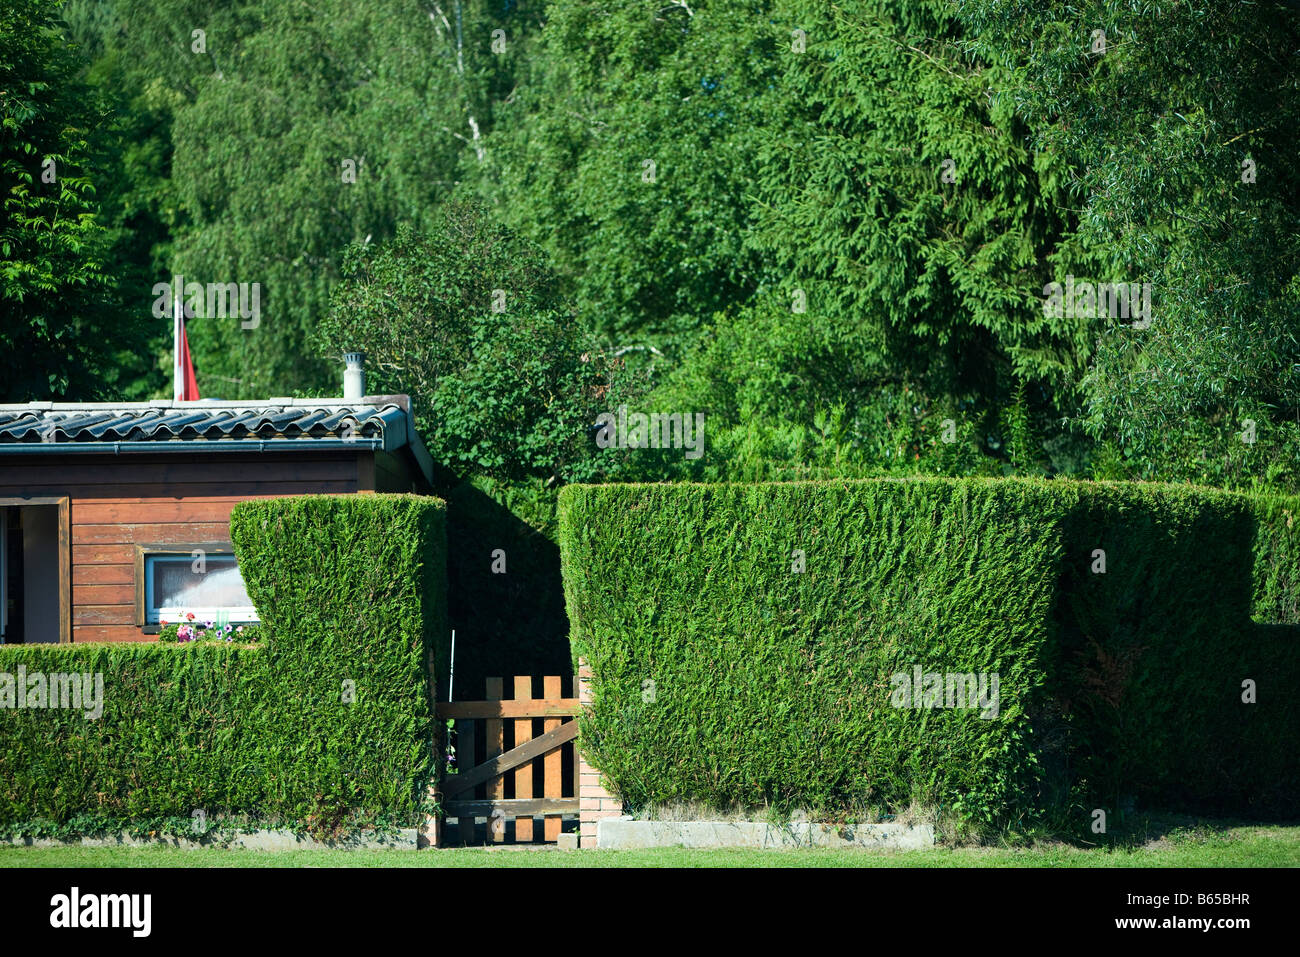 House behind hedge - Stock Image